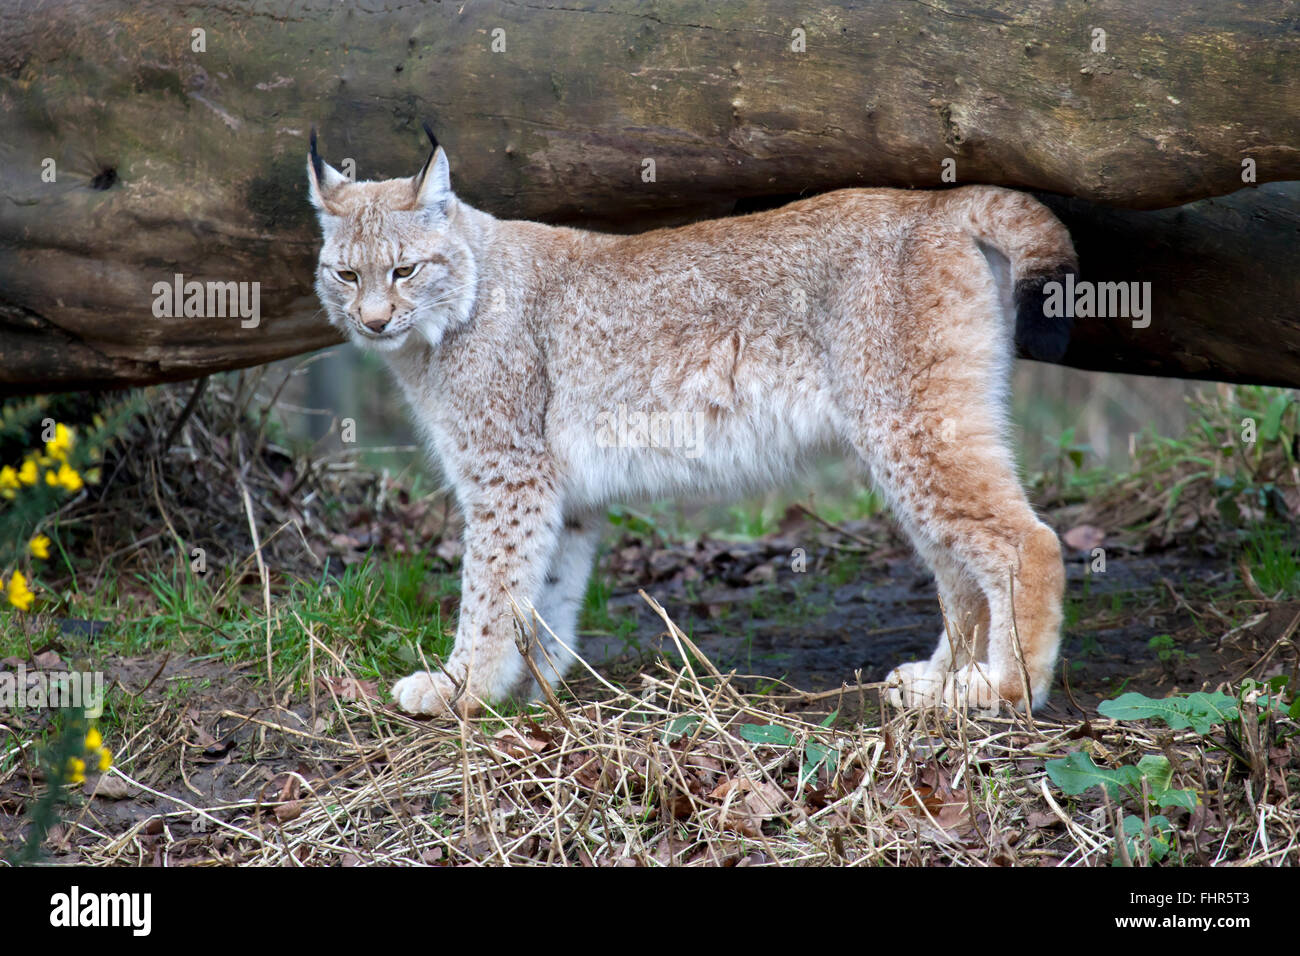 A single European Lynx standing by a fallen tree - Stock Image